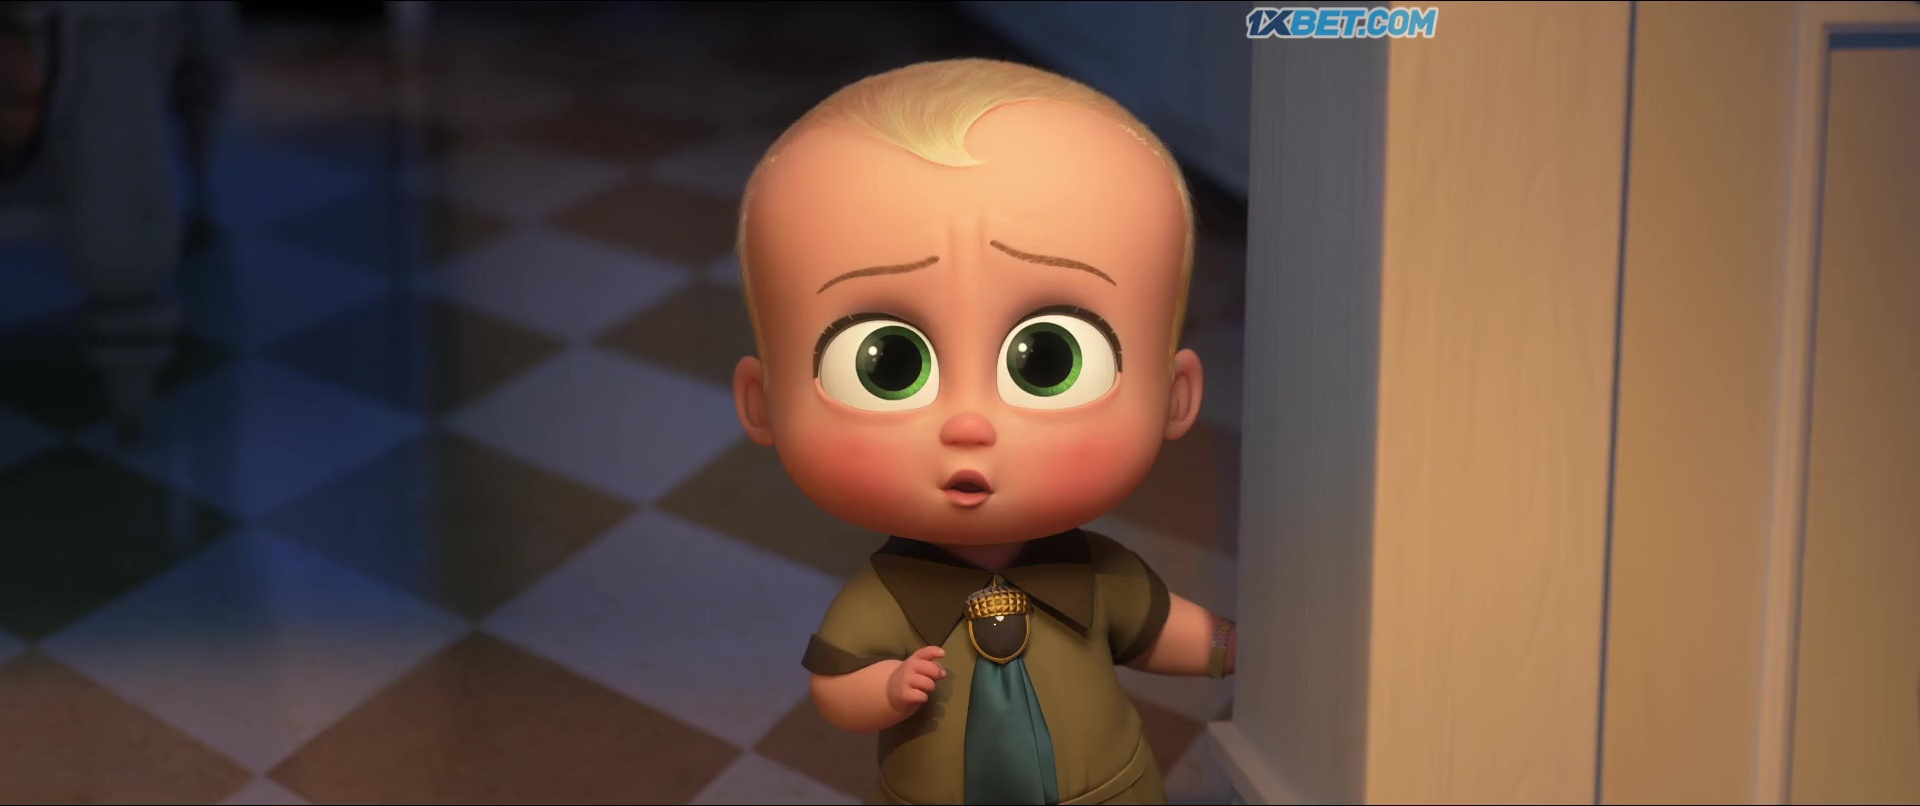 Download The Boss Baby 2 Full Movie